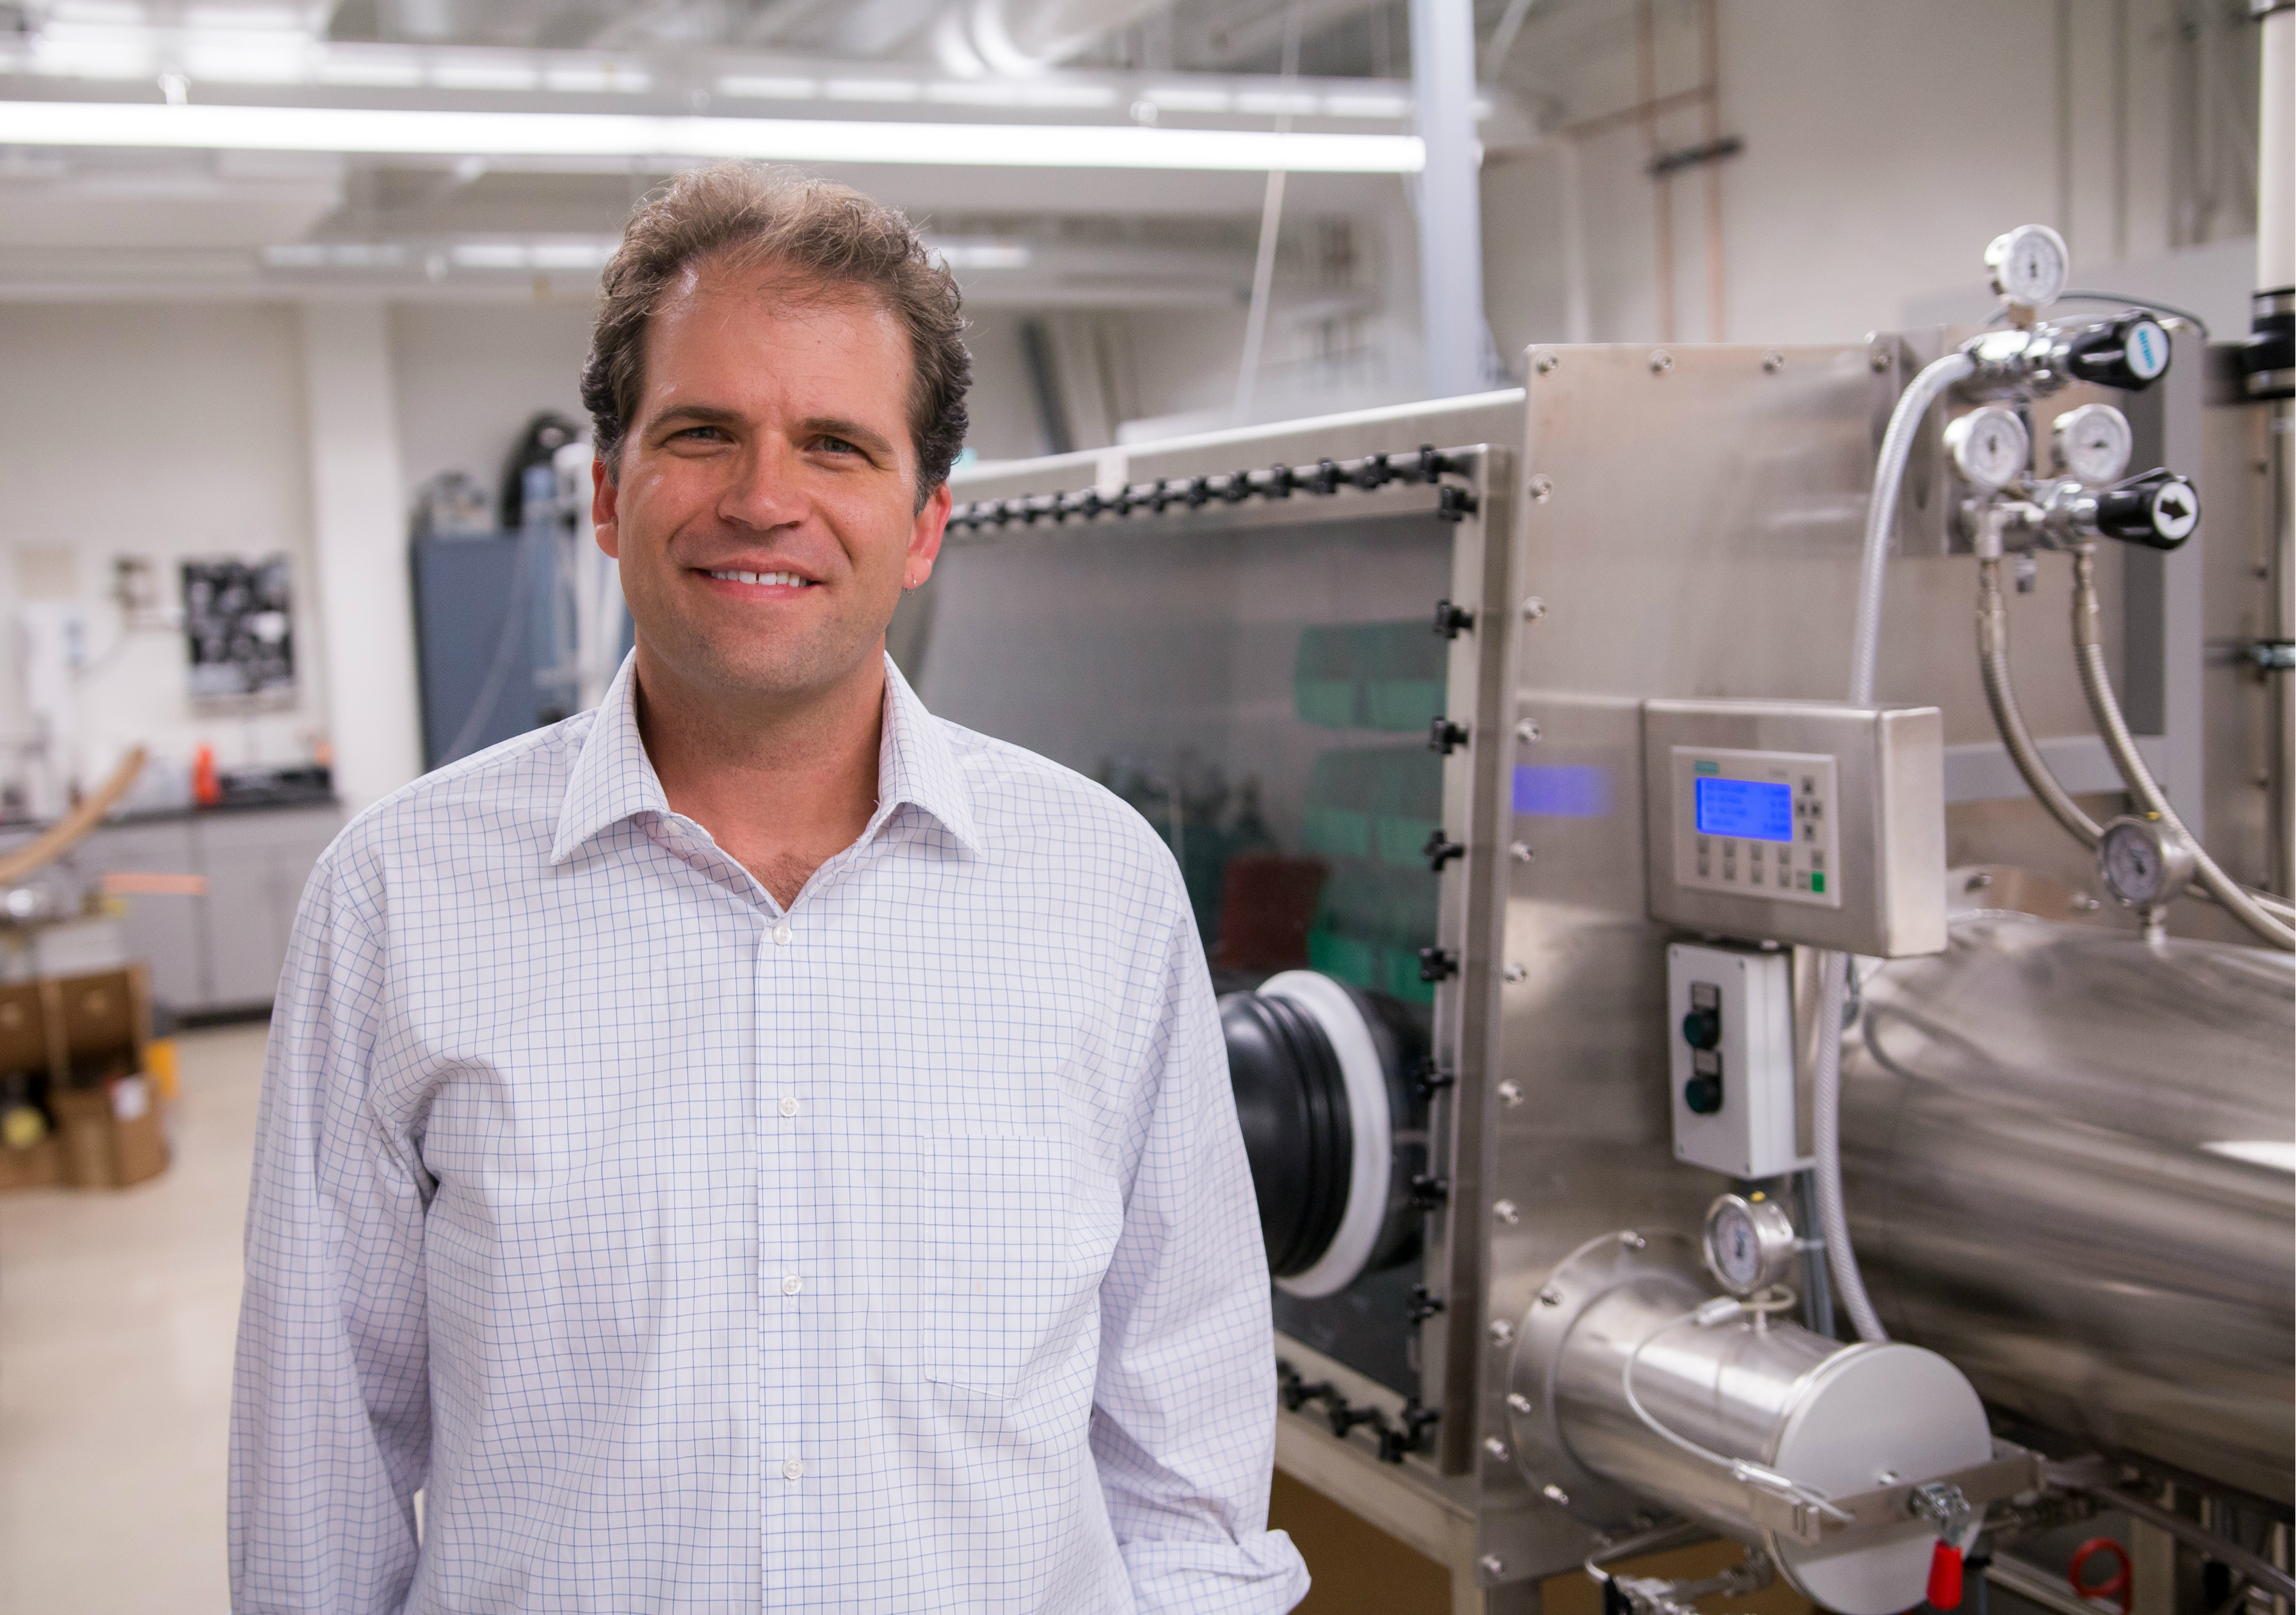 Steven DeCaluwe is assistant professor of mechanical engineering at Colorado School of Mines.